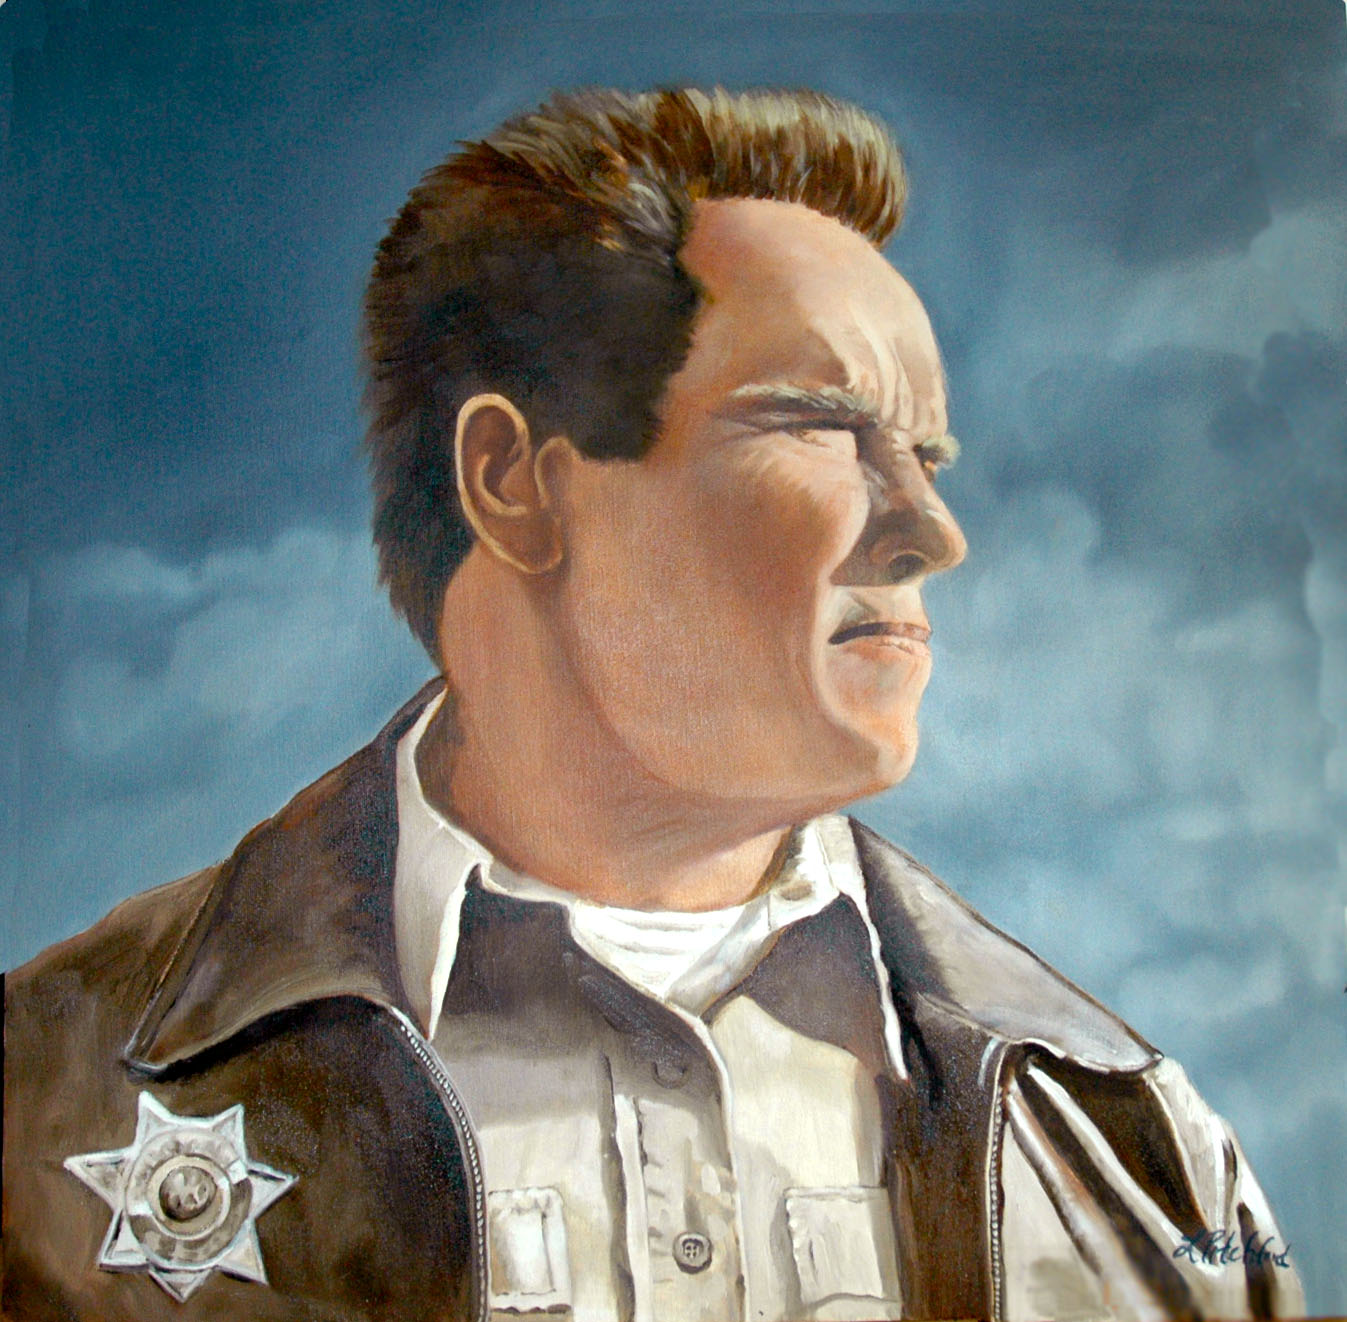 Commissioned work - Arnold Schwarzenegger in   The Last Stand   as Sheriff Ray Owens - SOLD